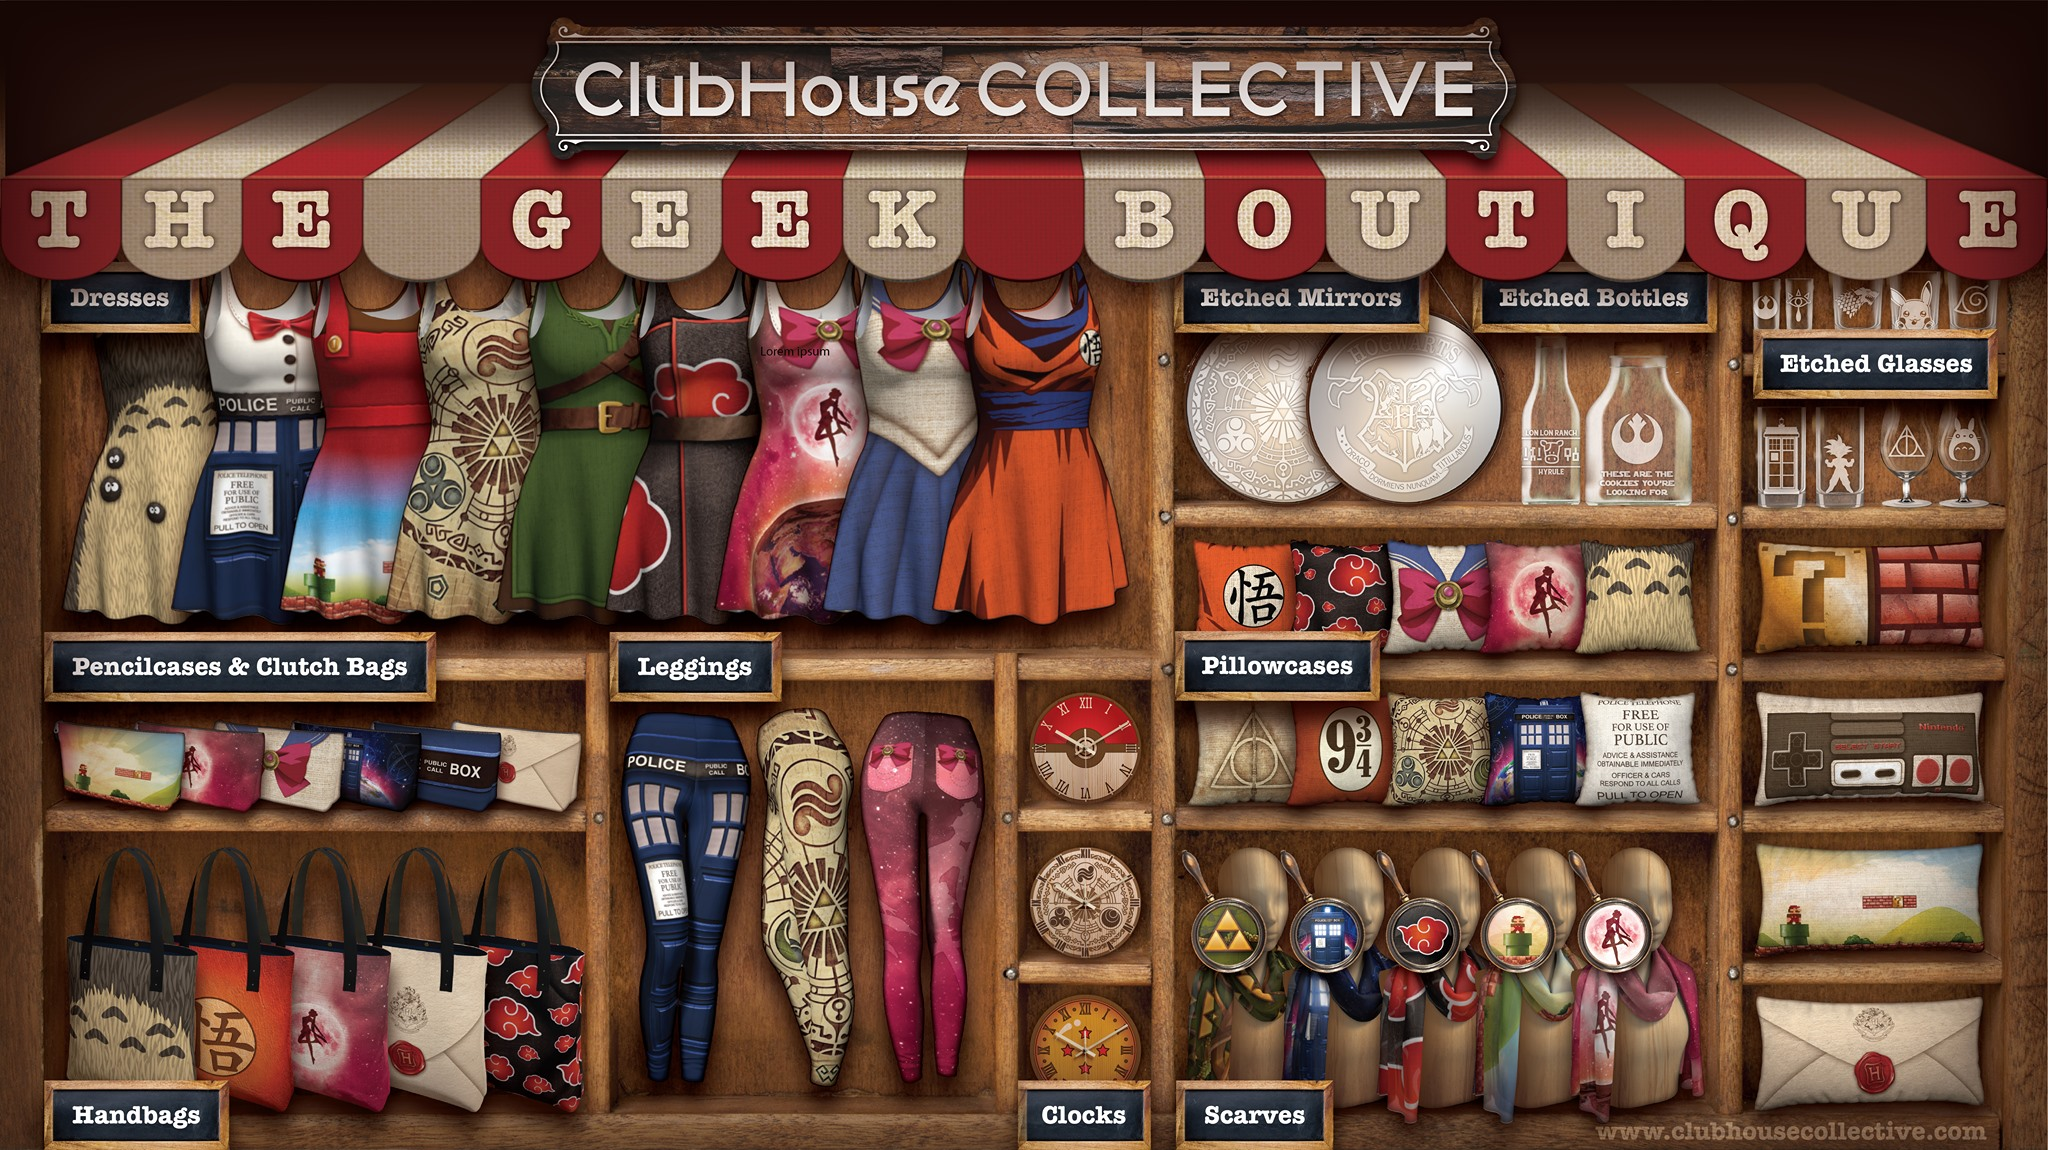 Geek Boutique. ~ Corinne Jade, ClubHouse Collective